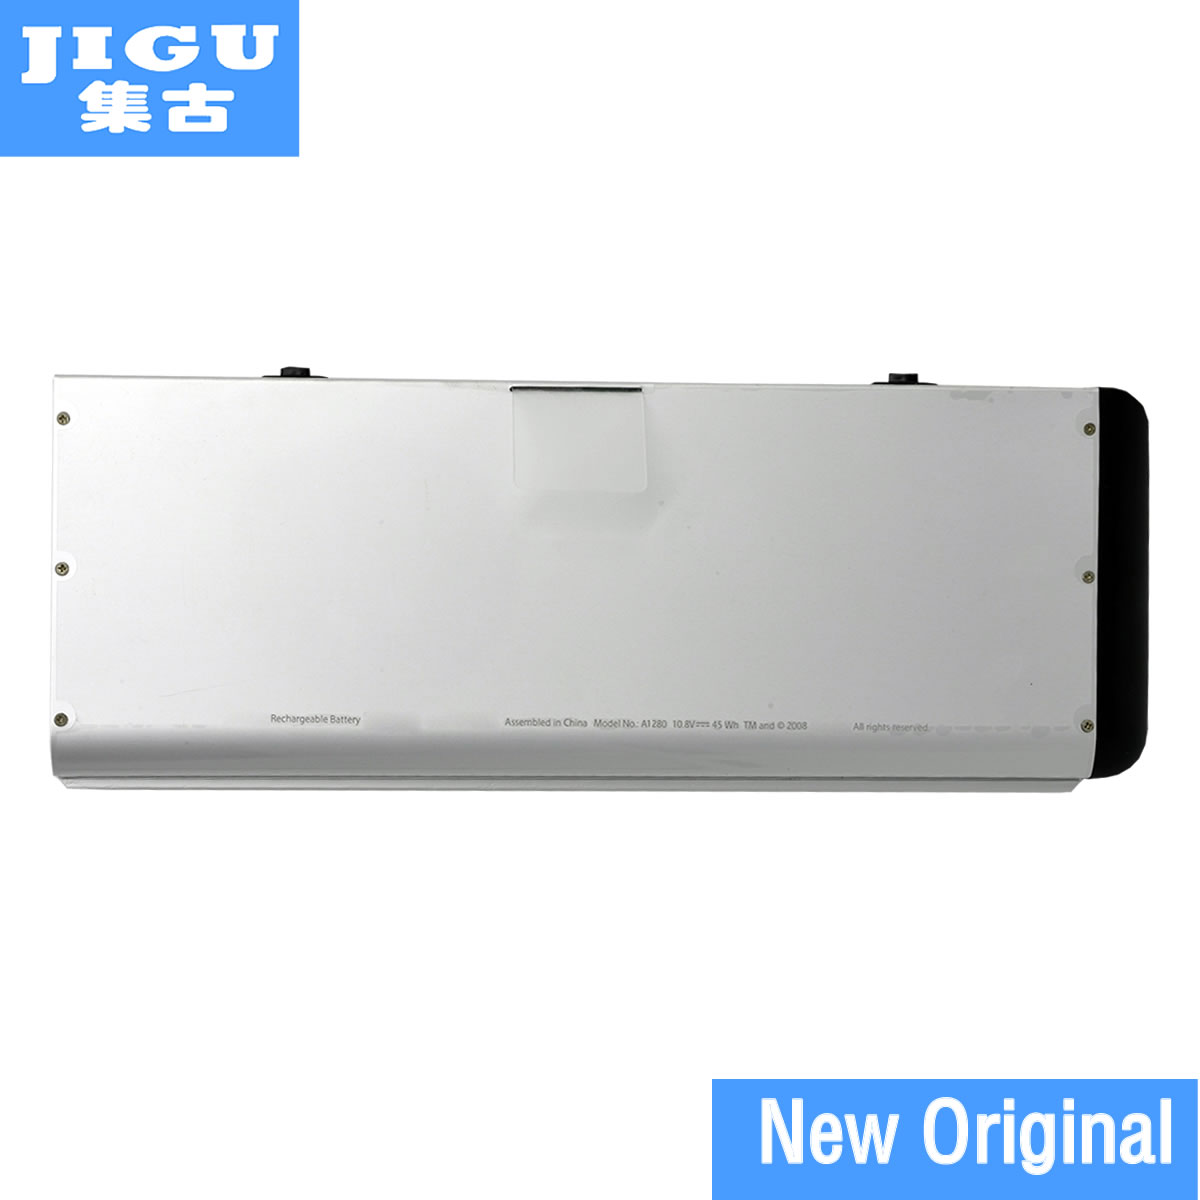 JIGU Free shipping A1280 MB771 Original Laptop Battery For APPLE MacBook 13 A1278 MB466 MB467 MC516CH/A mb771 10.8V 45WHJIGU Free shipping A1280 MB771 Original Laptop Battery For APPLE MacBook 13 A1278 MB466 MB467 MC516CH/A mb771 10.8V 45WH